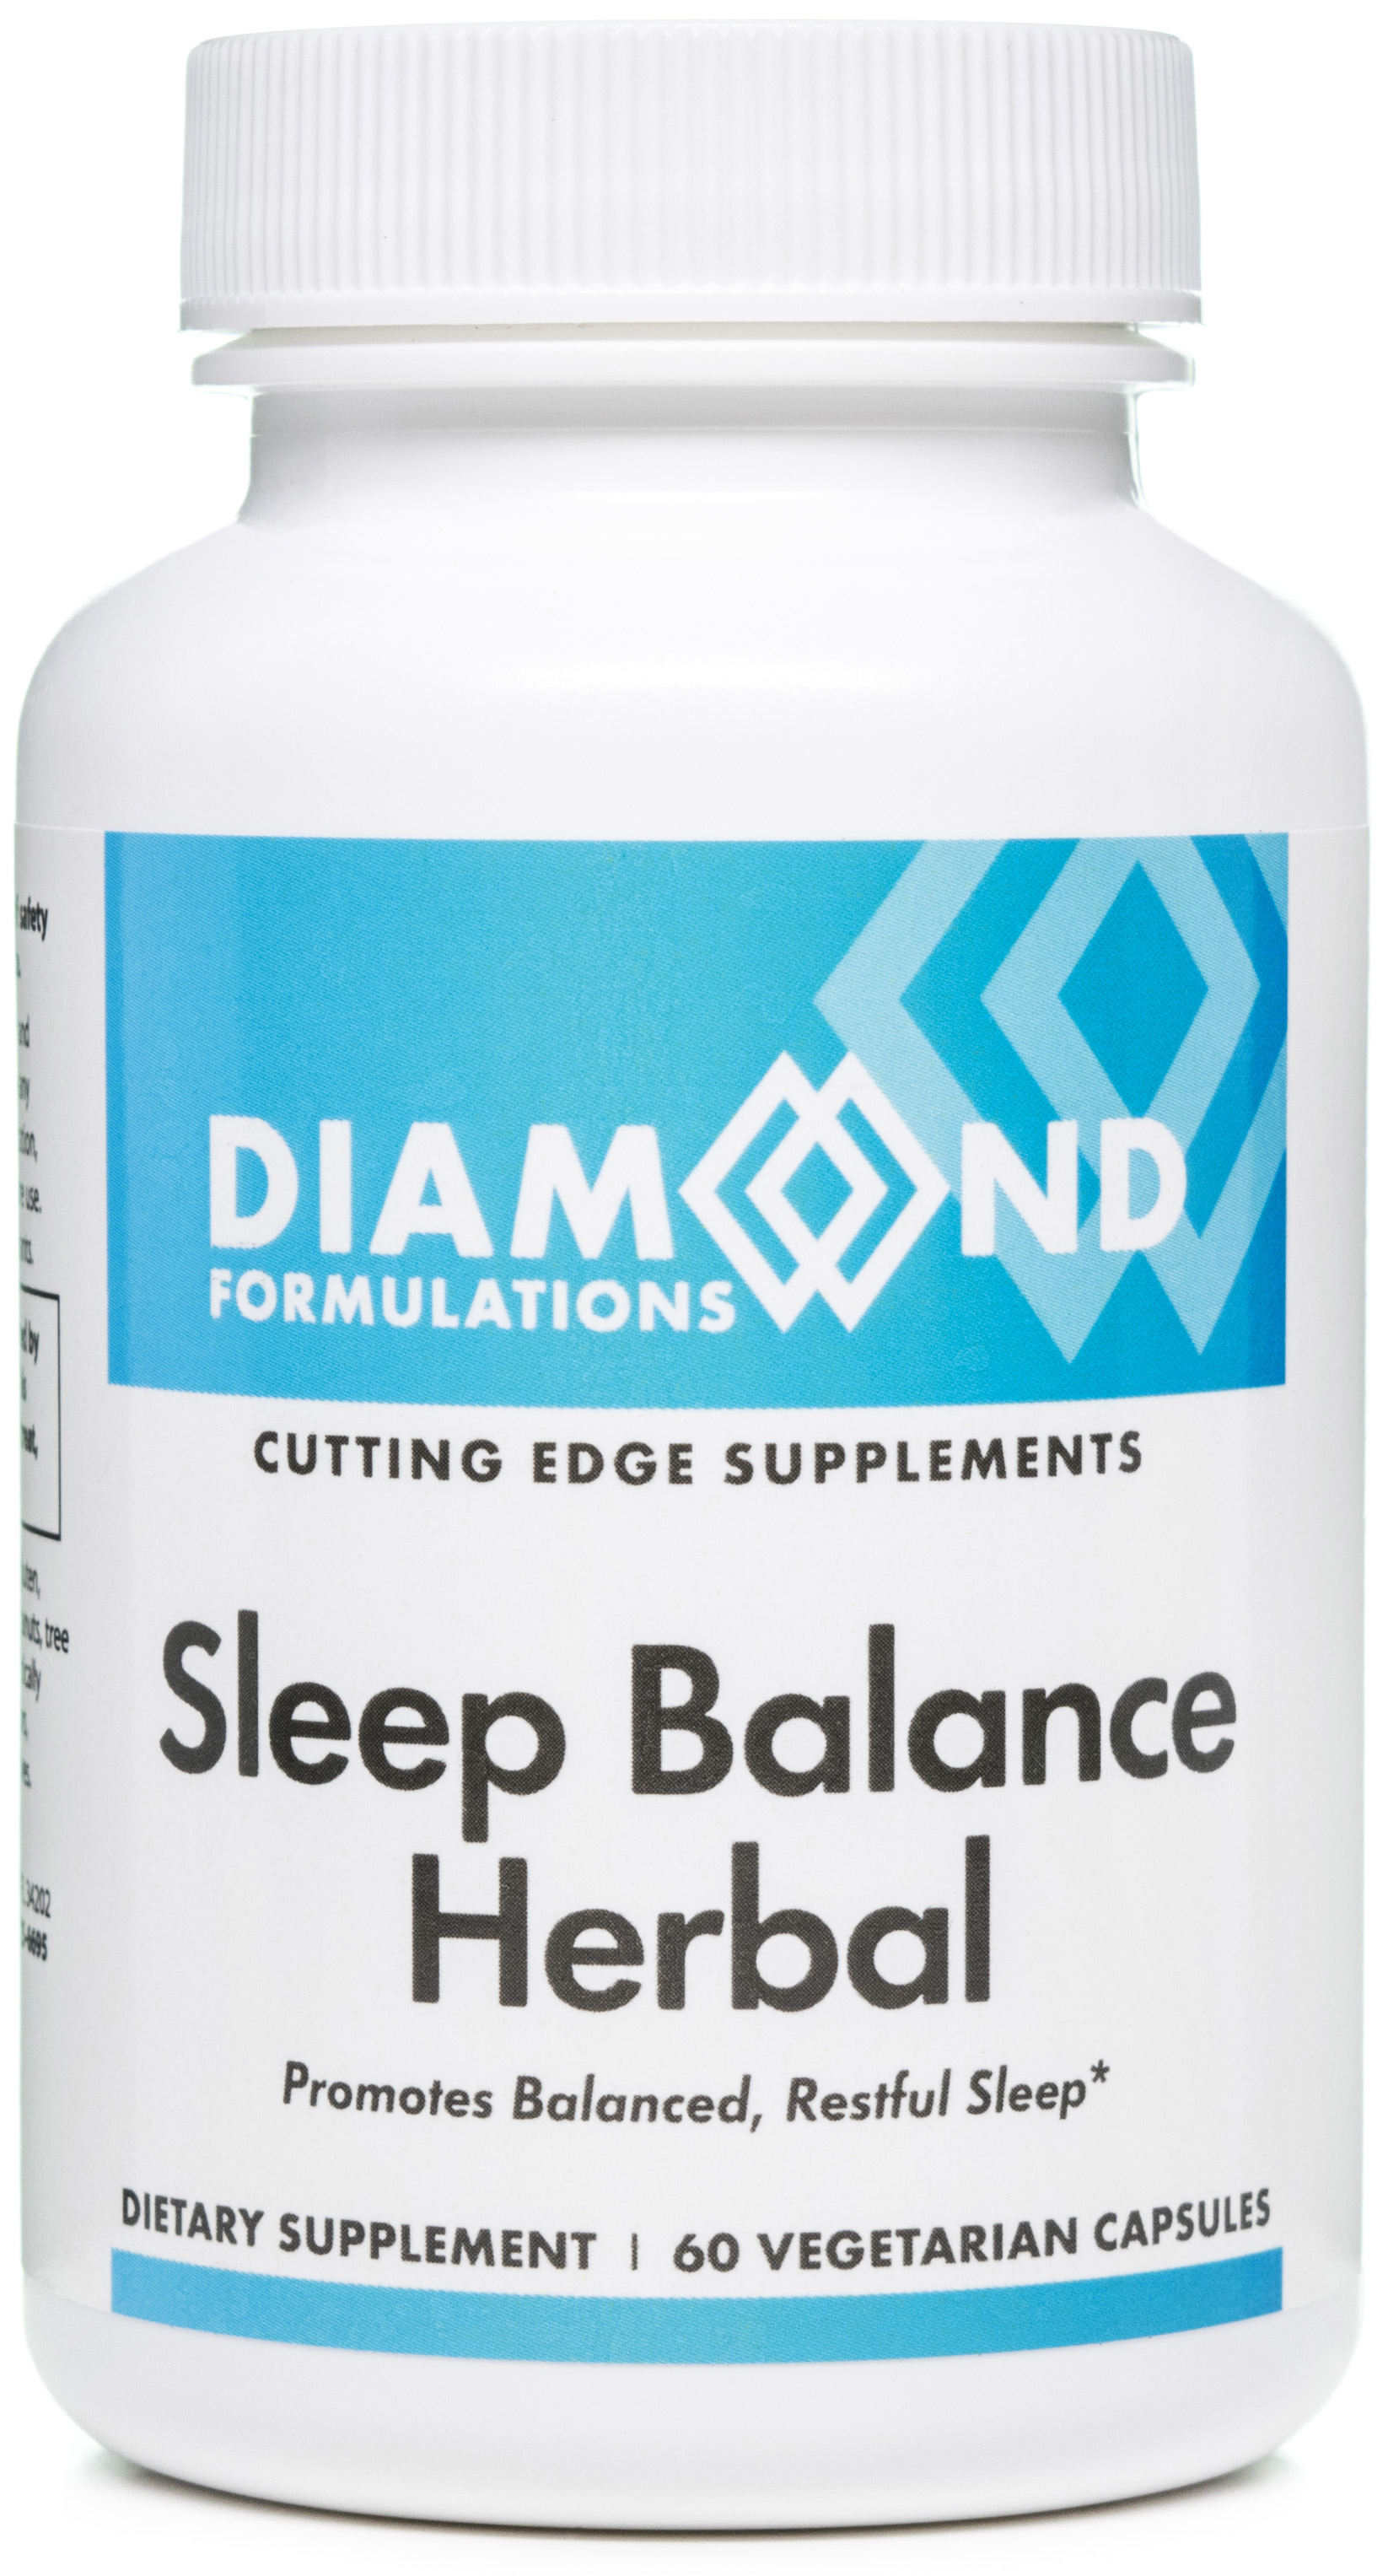 sleep-balance-herbal-by-diamond-formulations.jpg